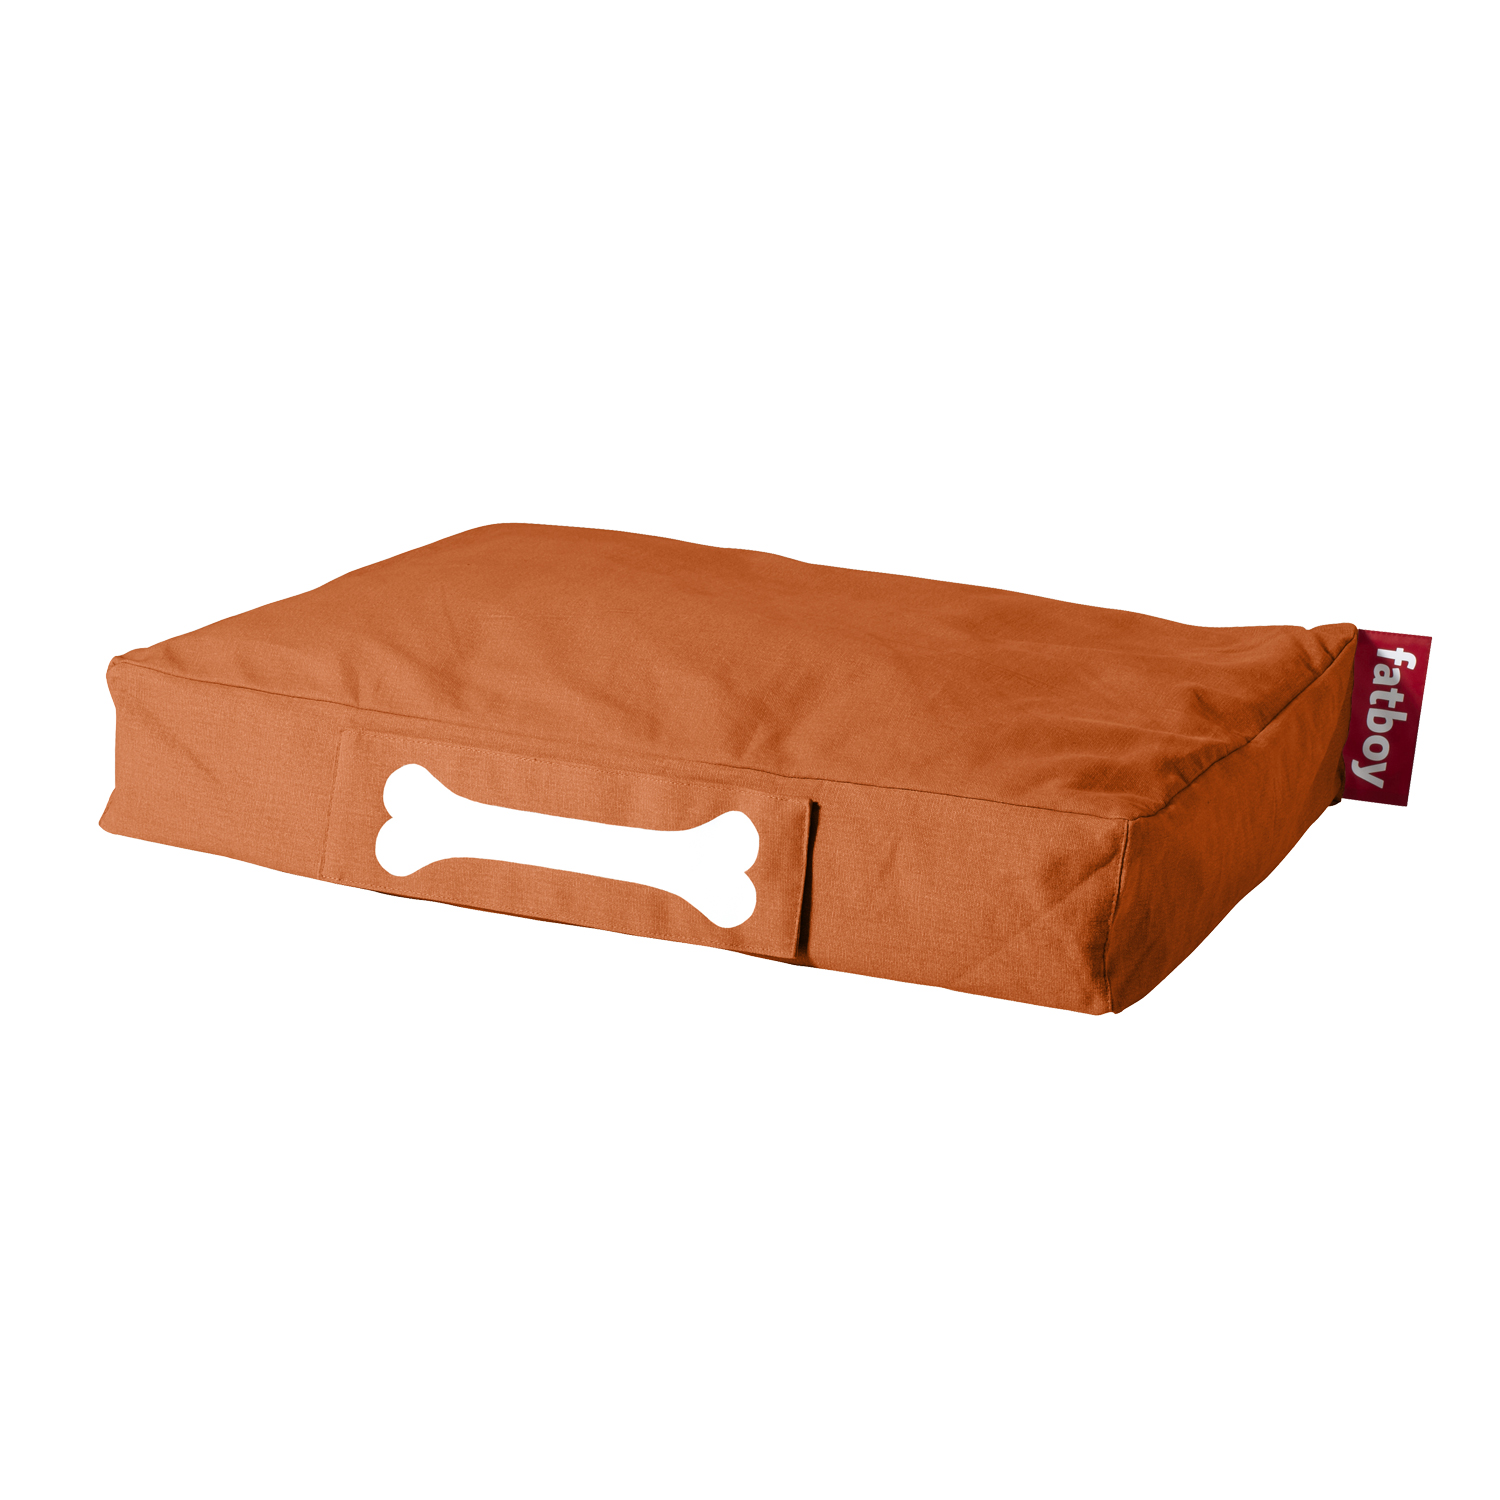 Doggielounge liten sittpuff, orange